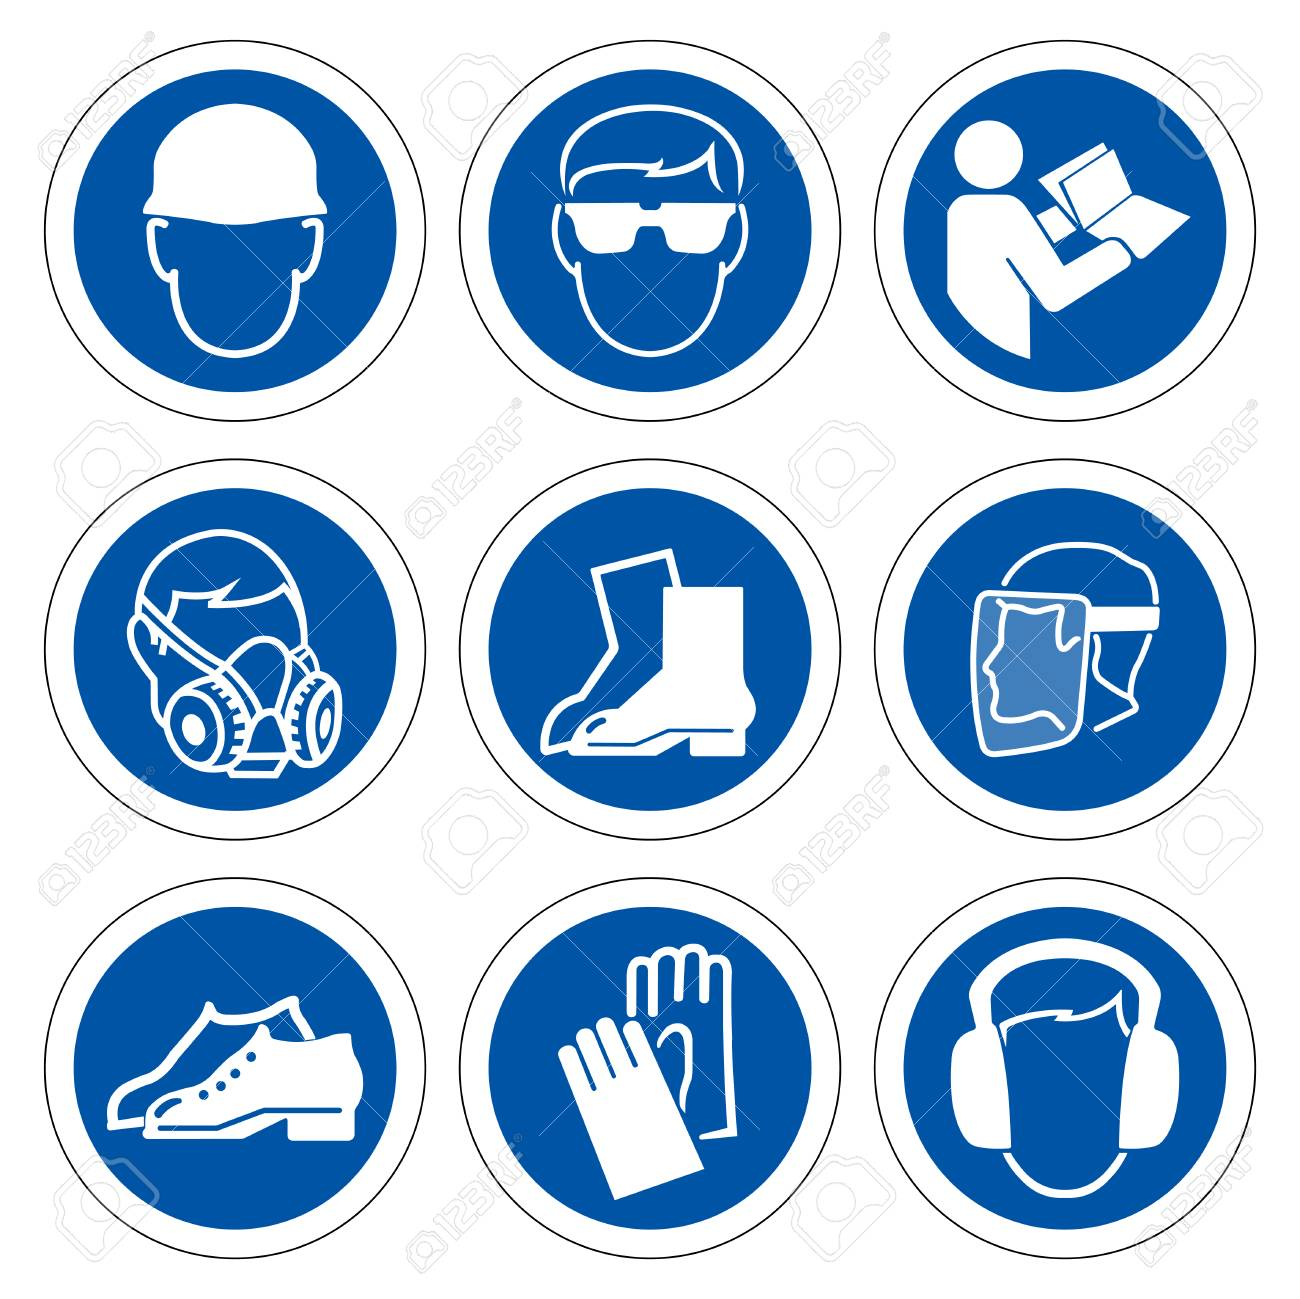 Required Personal Protective Equipment (PPE) Symbol,Safety Icon,Vector illustration - 122417114